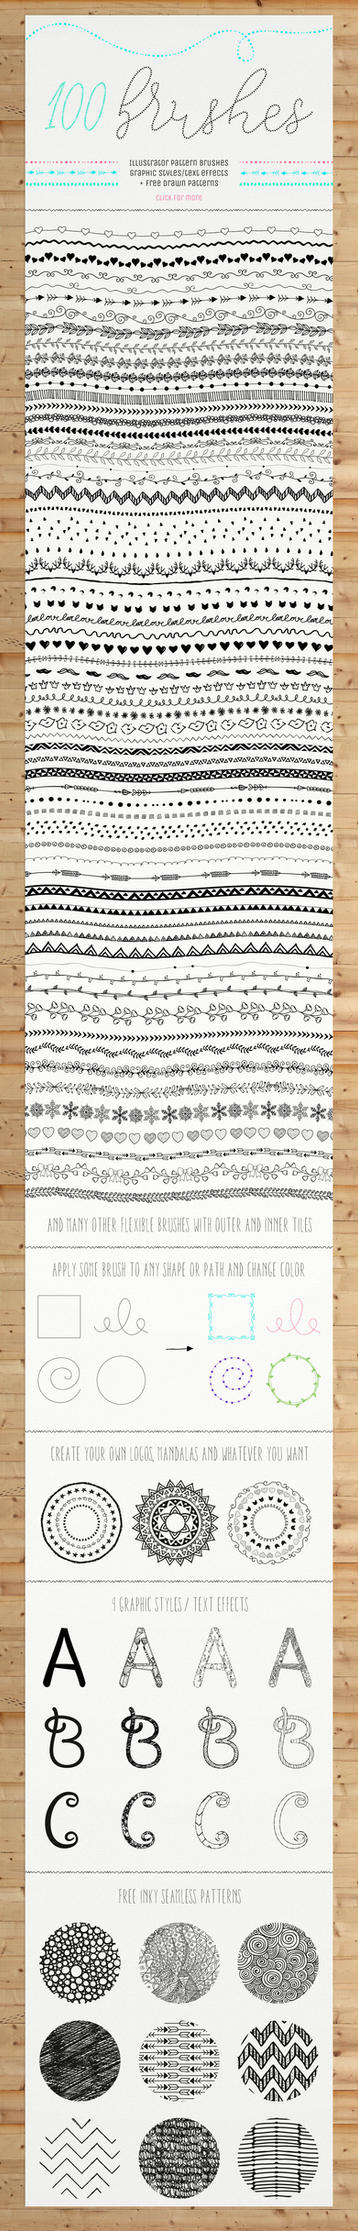 100 Pattern Brushes+9 Graphic Styles+Free Patterns by HelgaHelgy